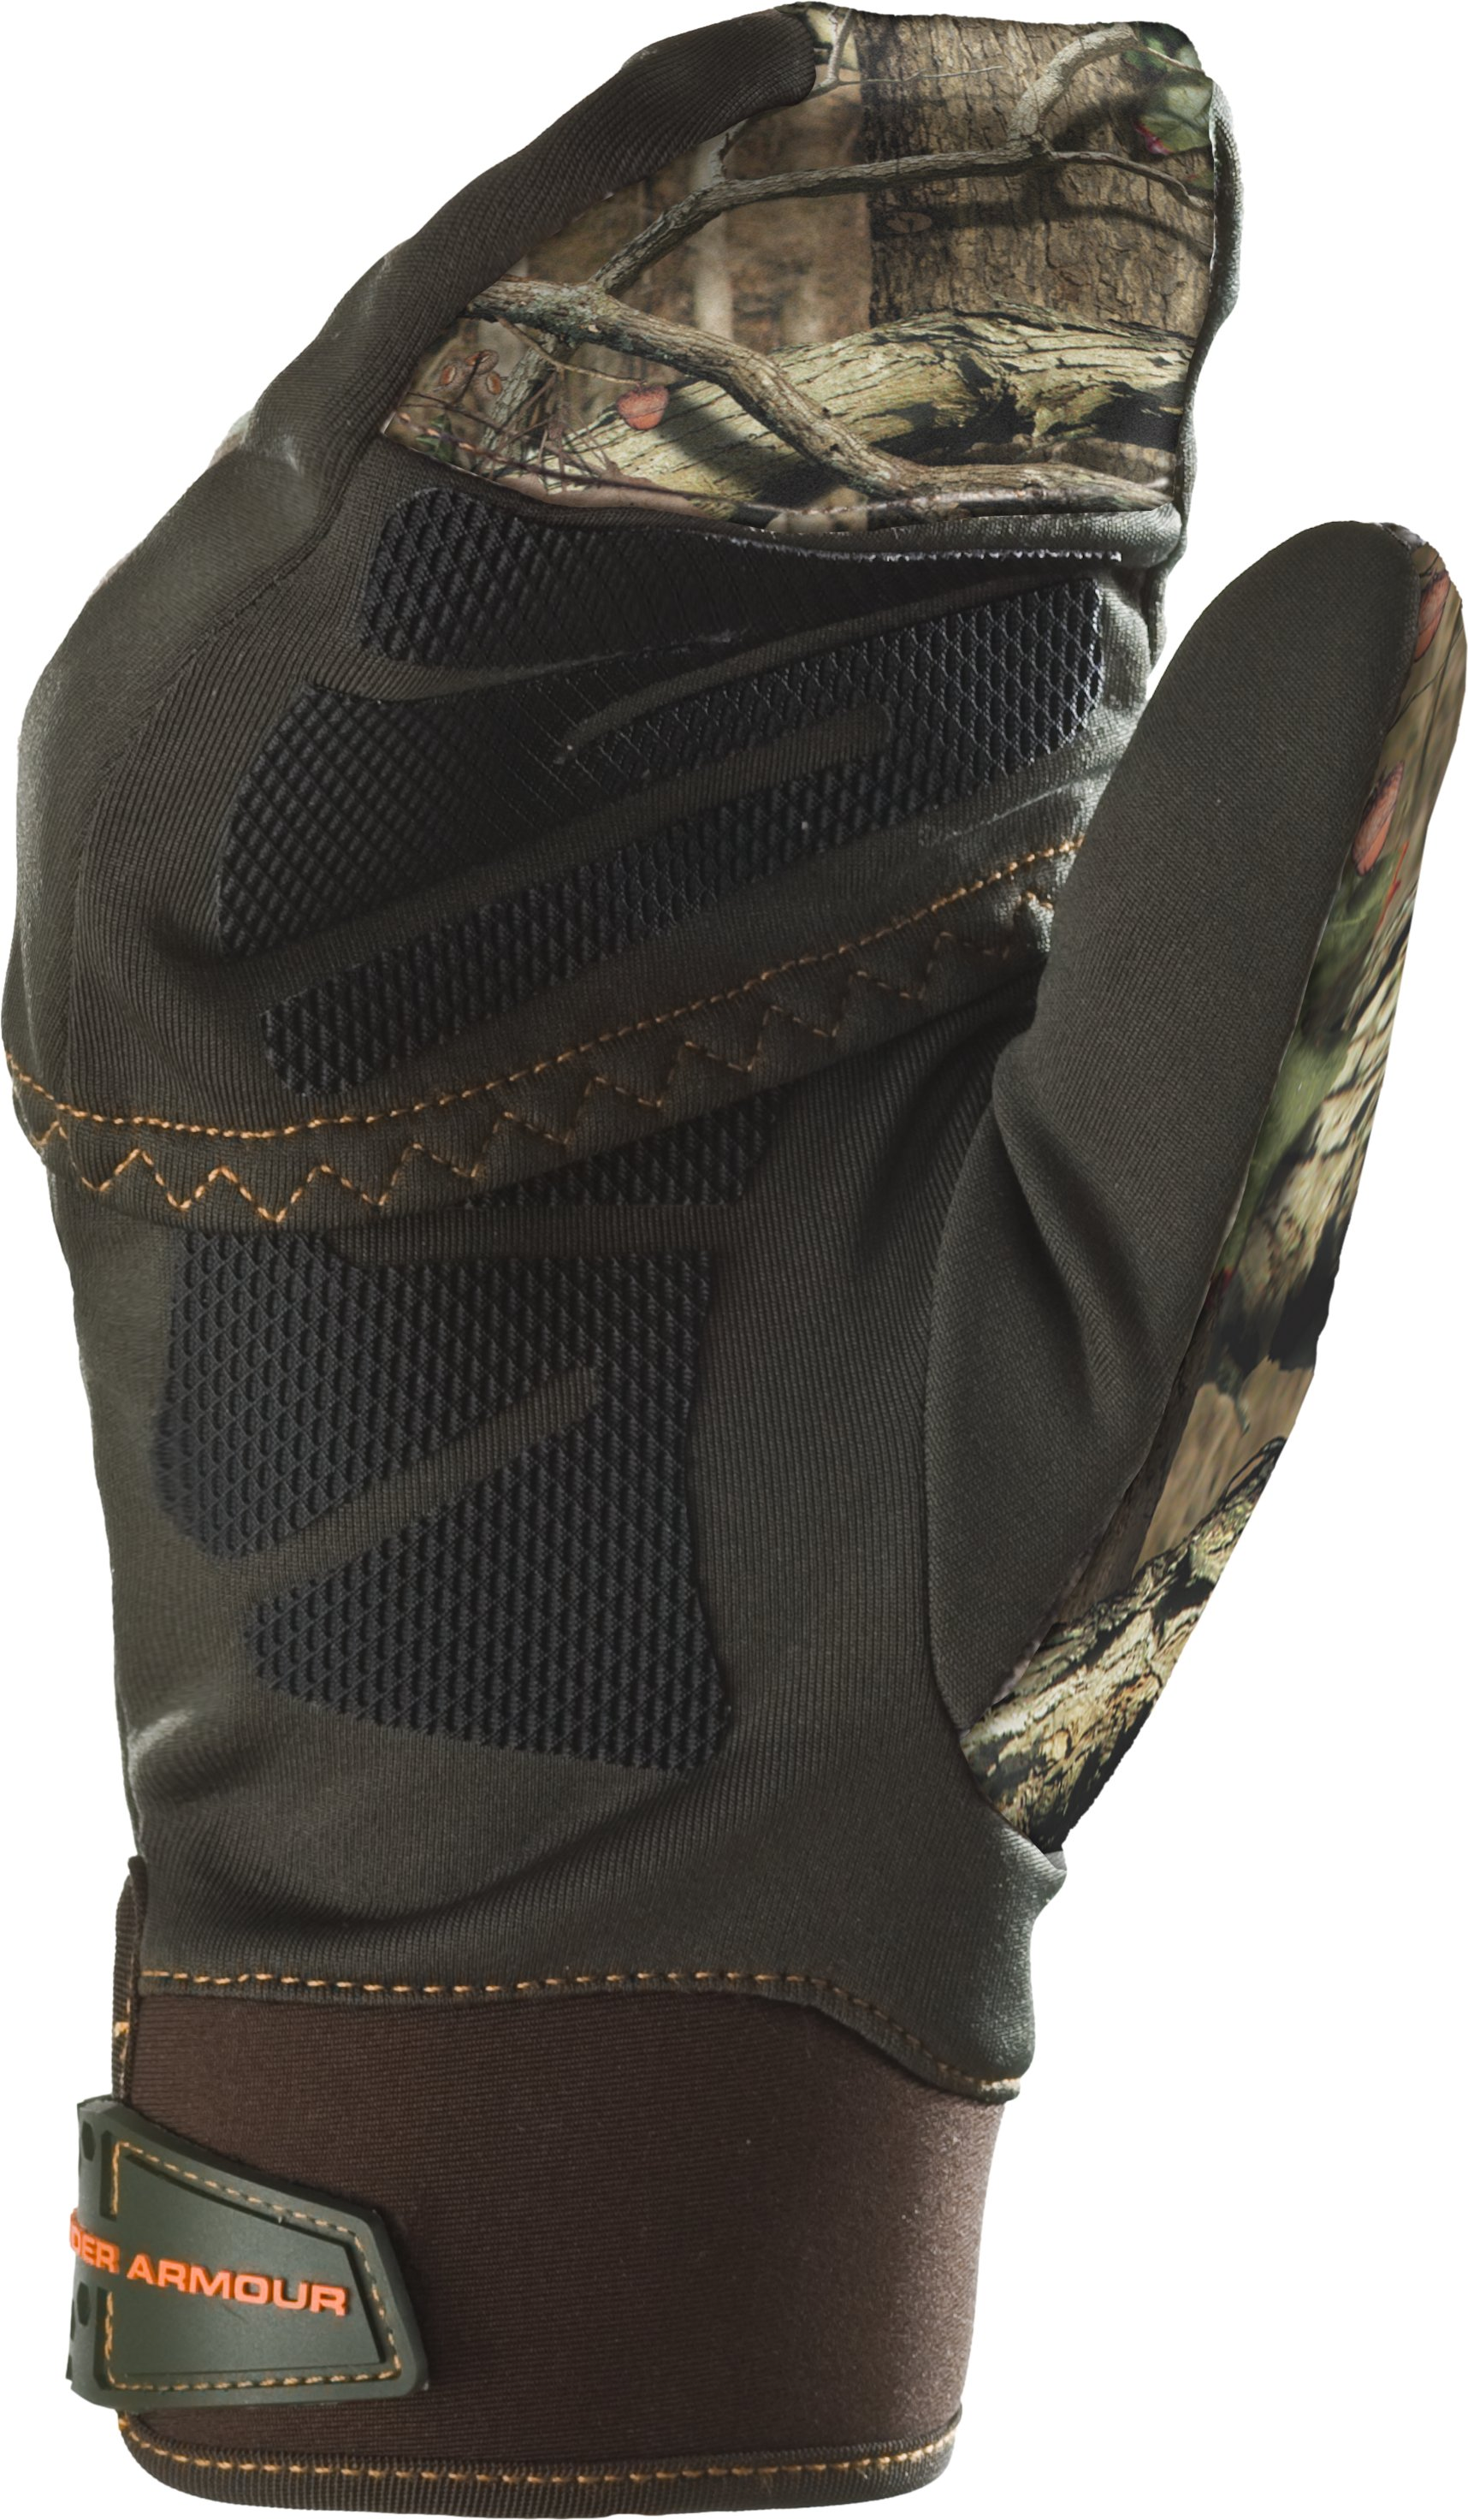 Men's Armour™ Derecho II Mitt, Mossy Oak Break-Up Infinity